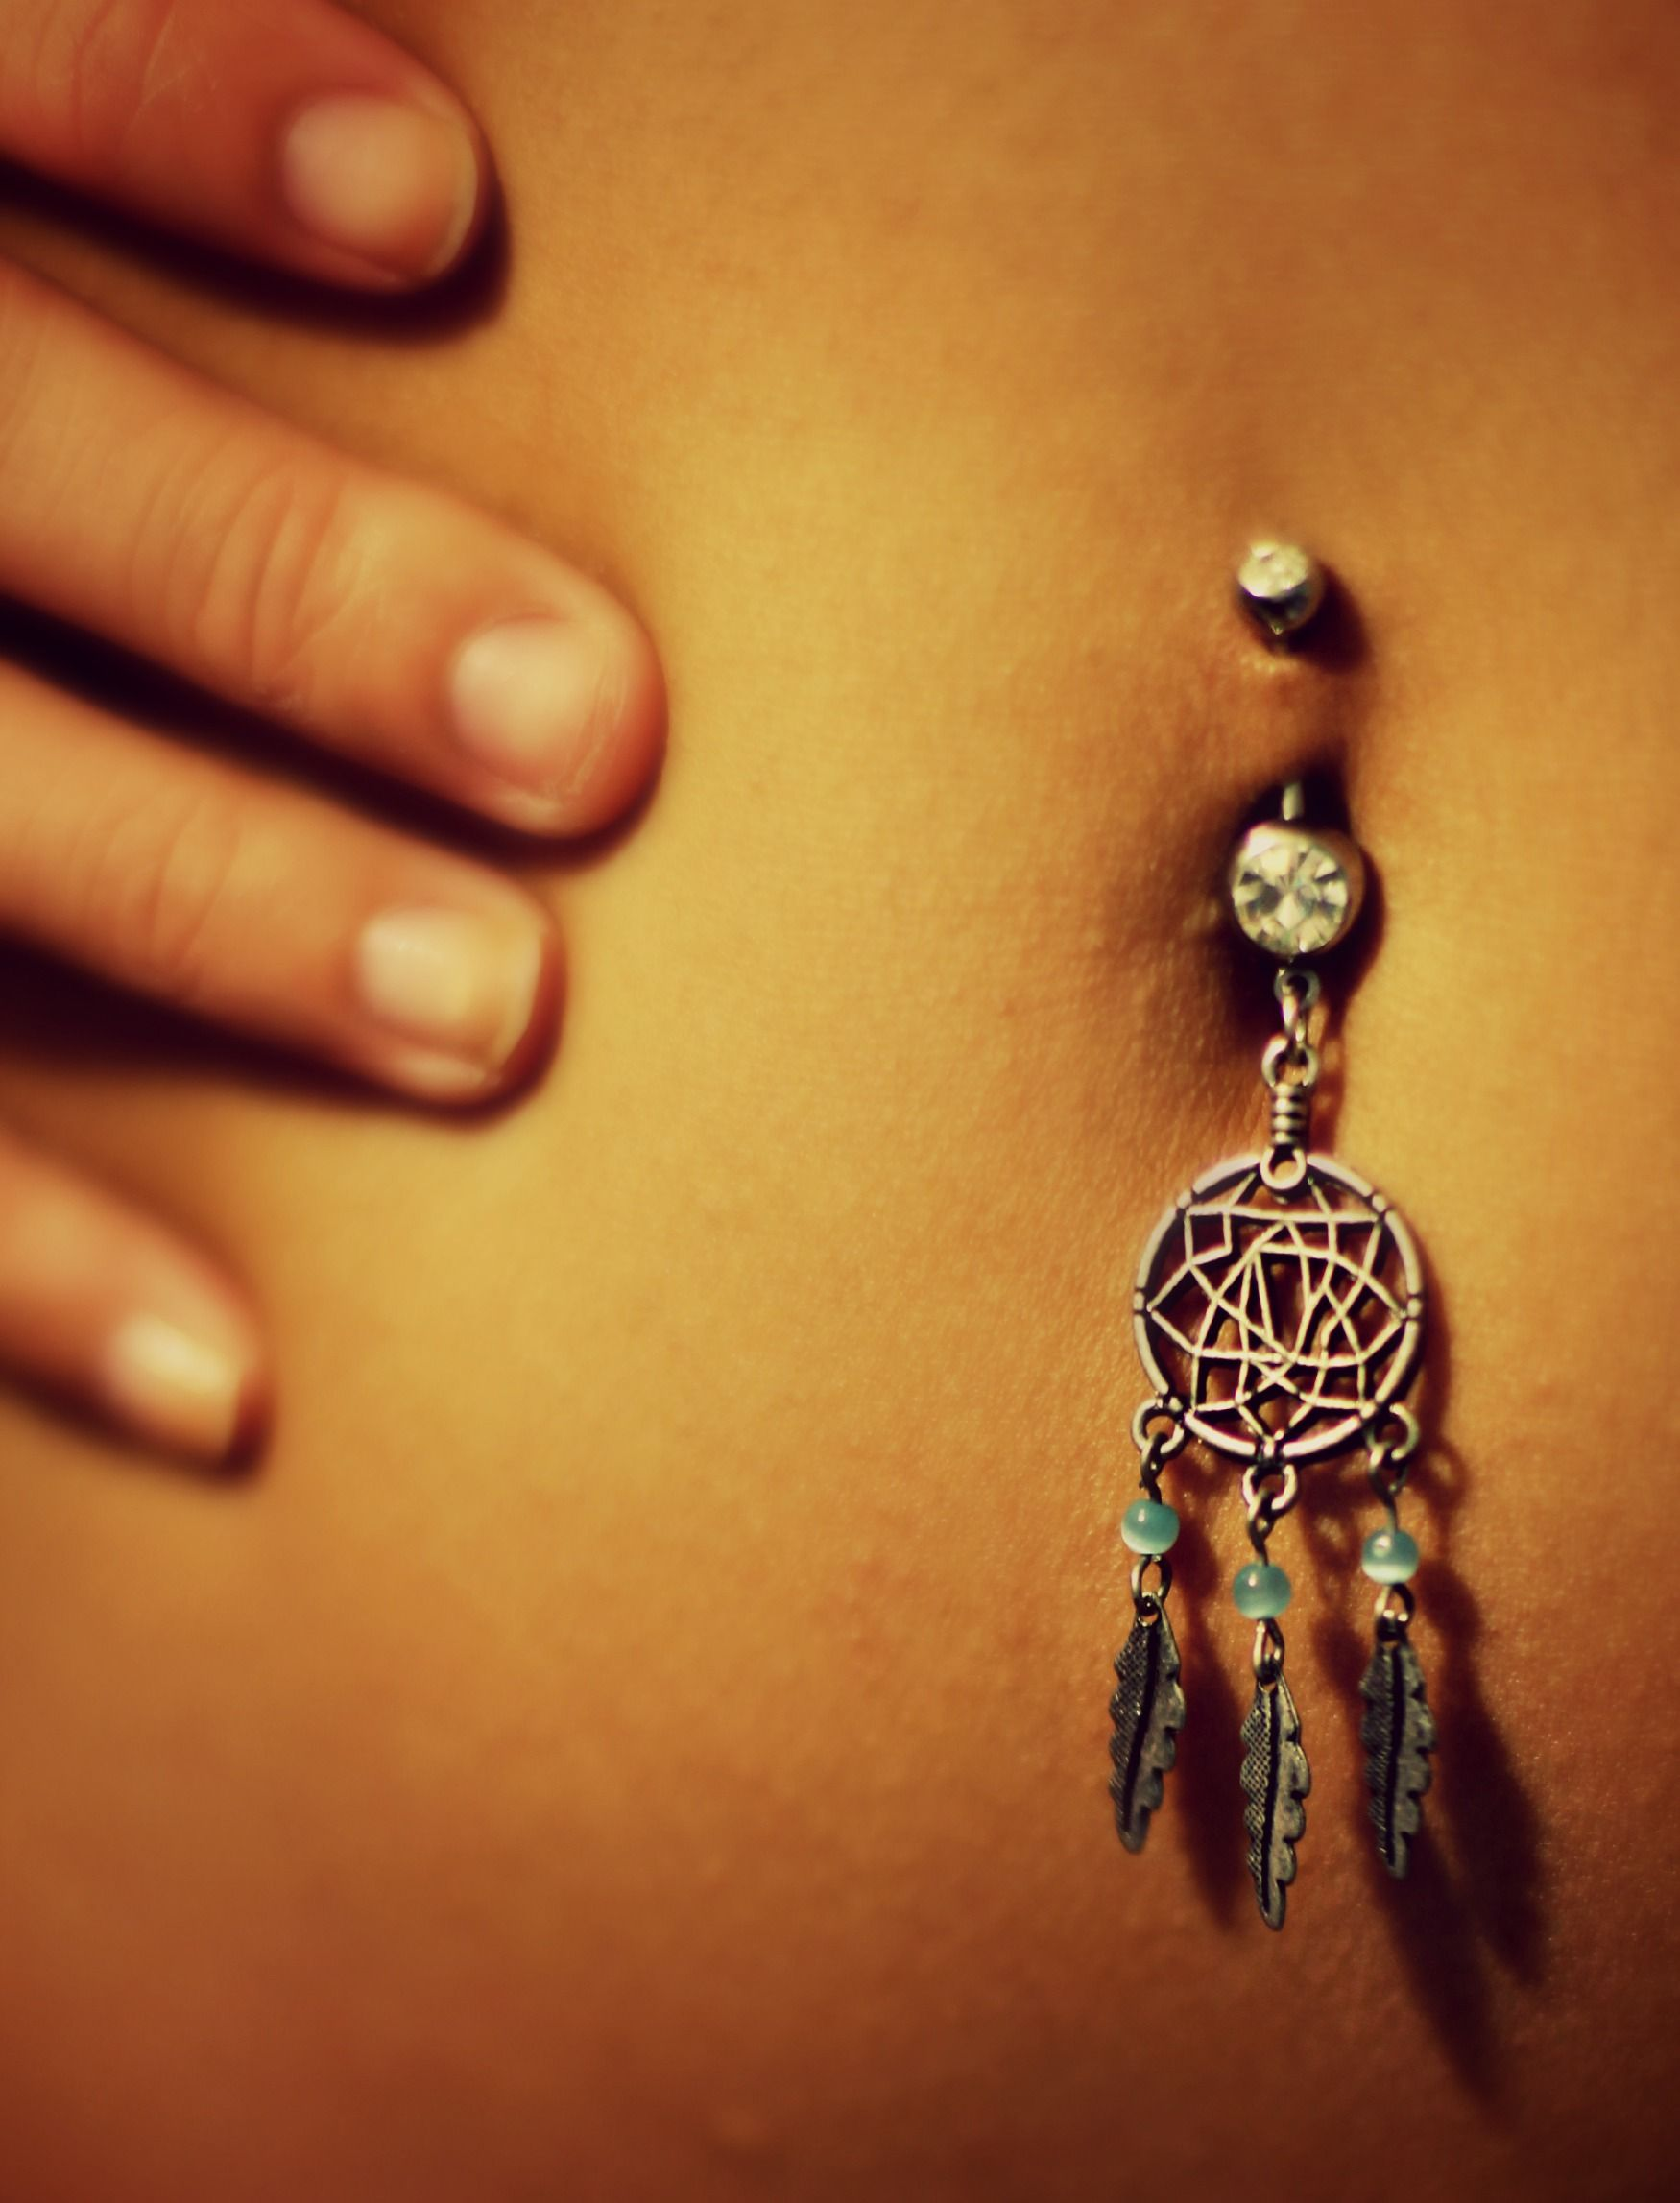 Long belly piercing  new bellybutton ring Hot Topic  Piercings  Pinterest  Hot topic